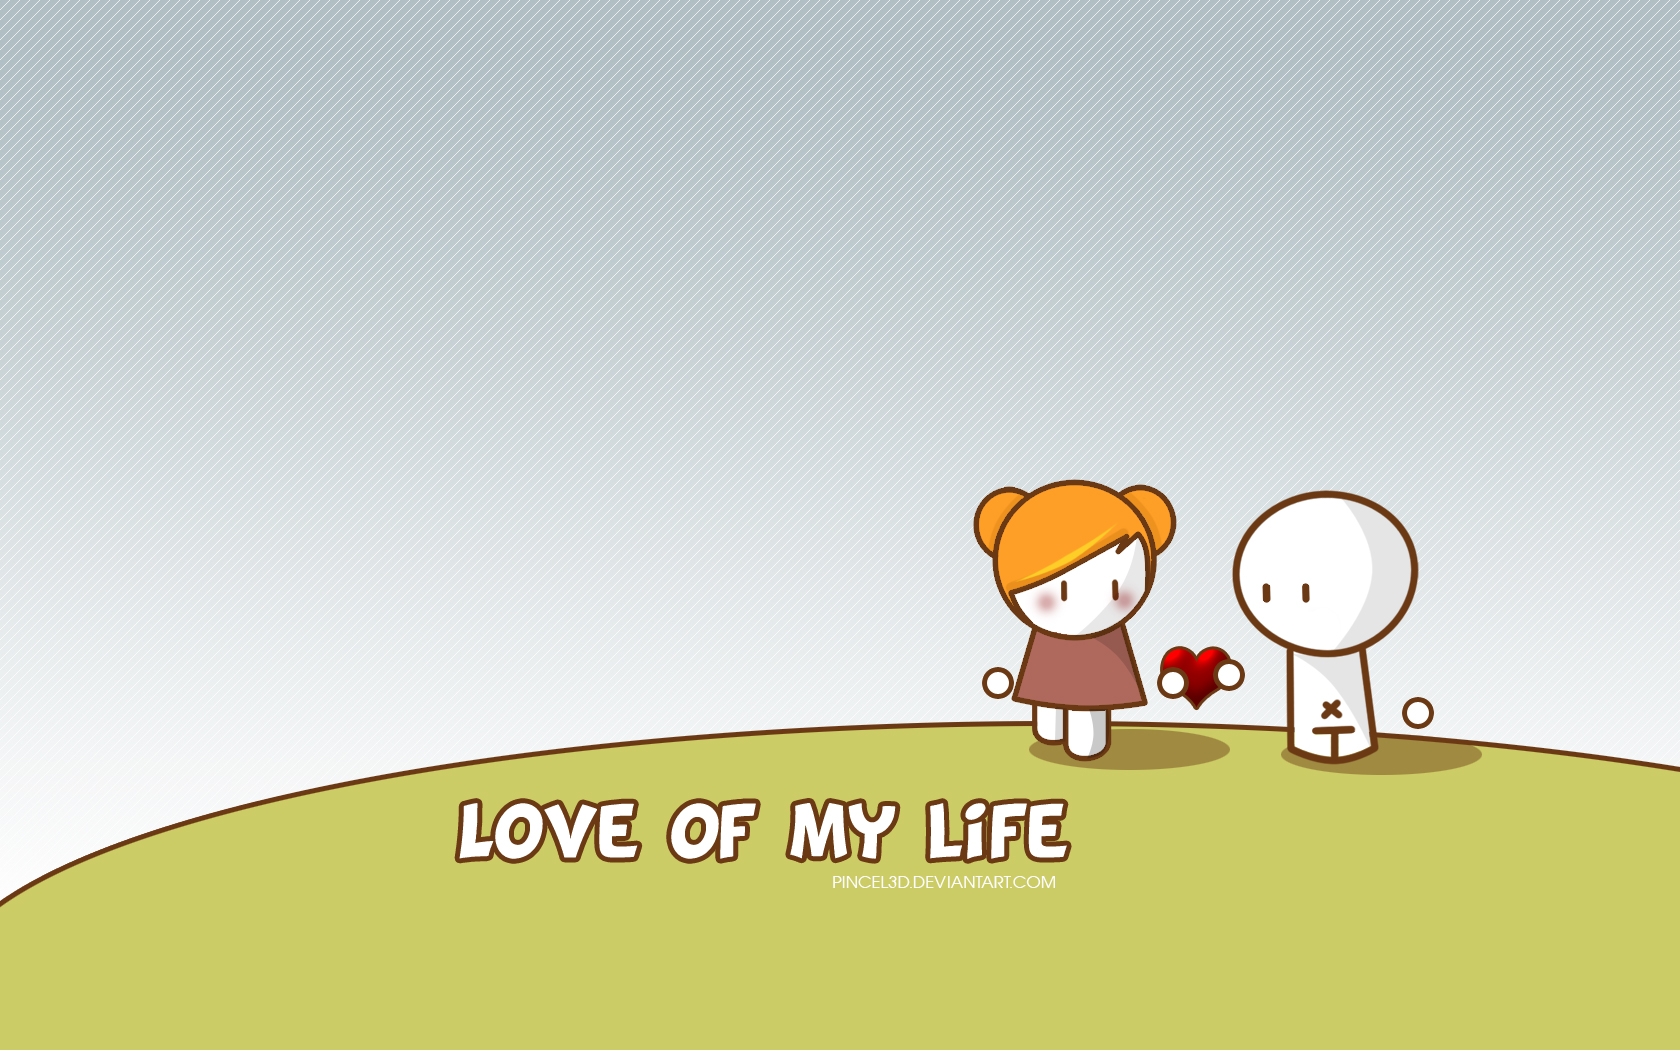 Love Is End Of Life Wallpaper : 1680x1050 Love of my life desktop Pc and Mac wallpaper